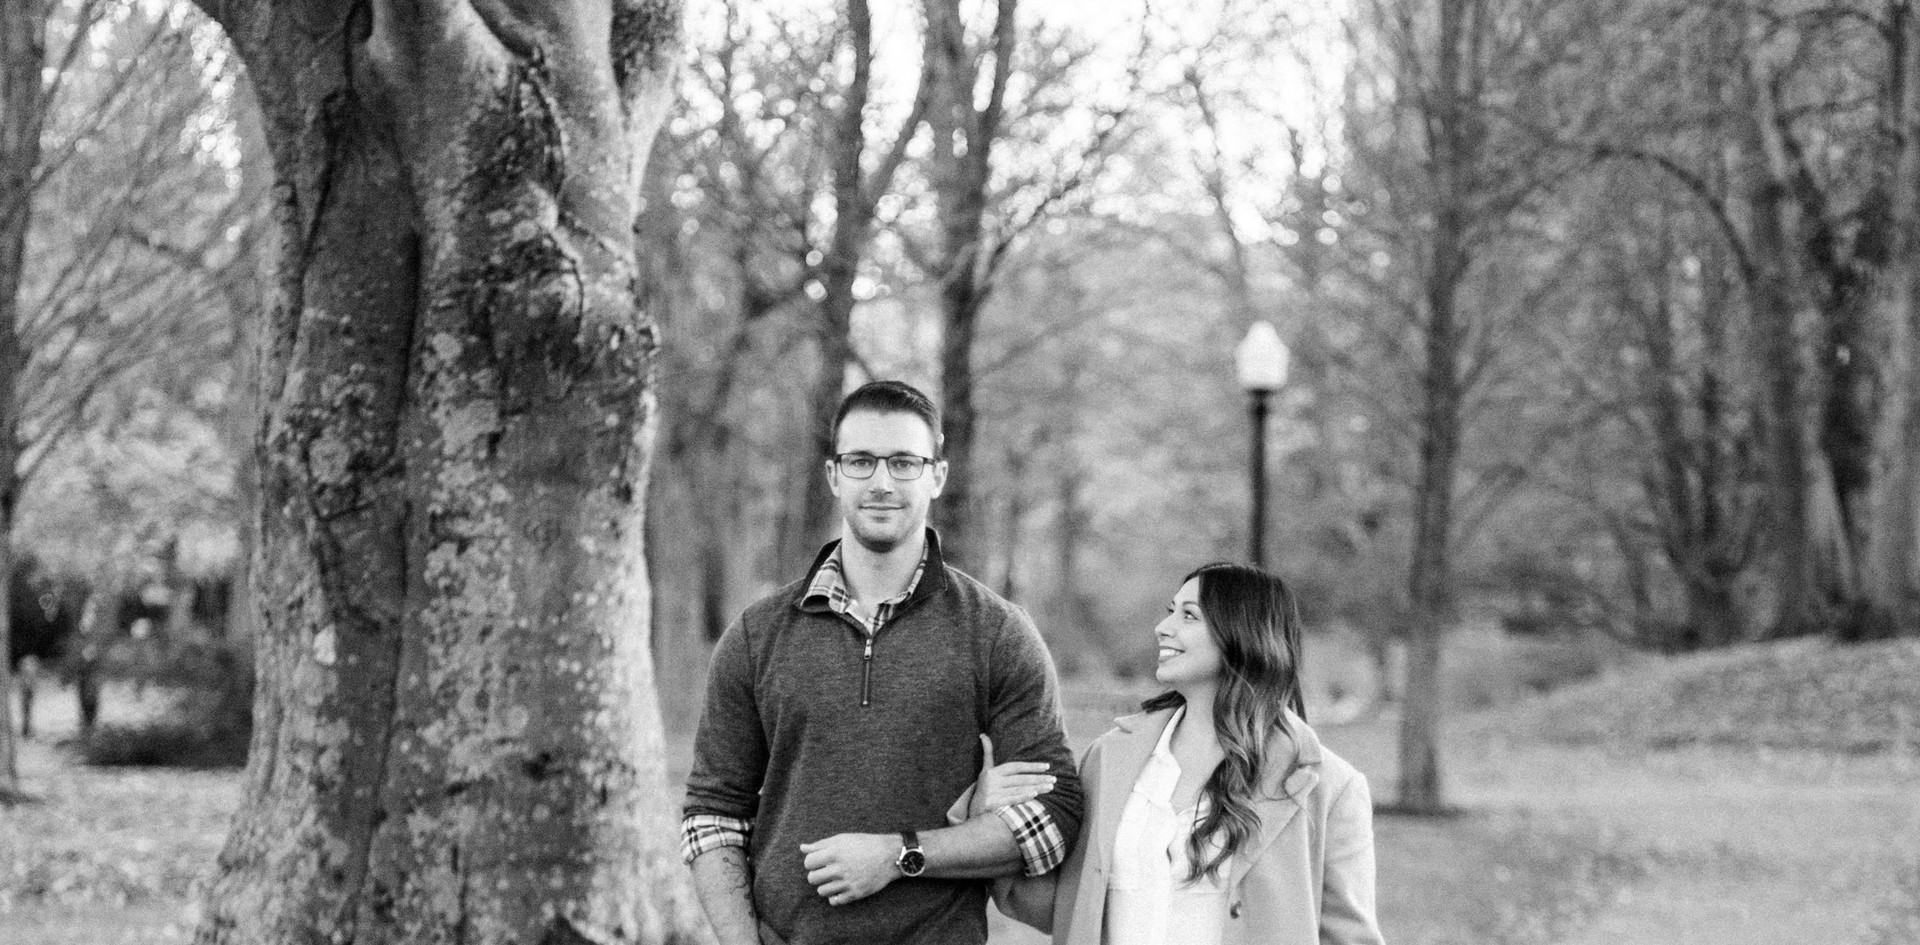 Marie-Roy-Photography-Engagement-0810-2.